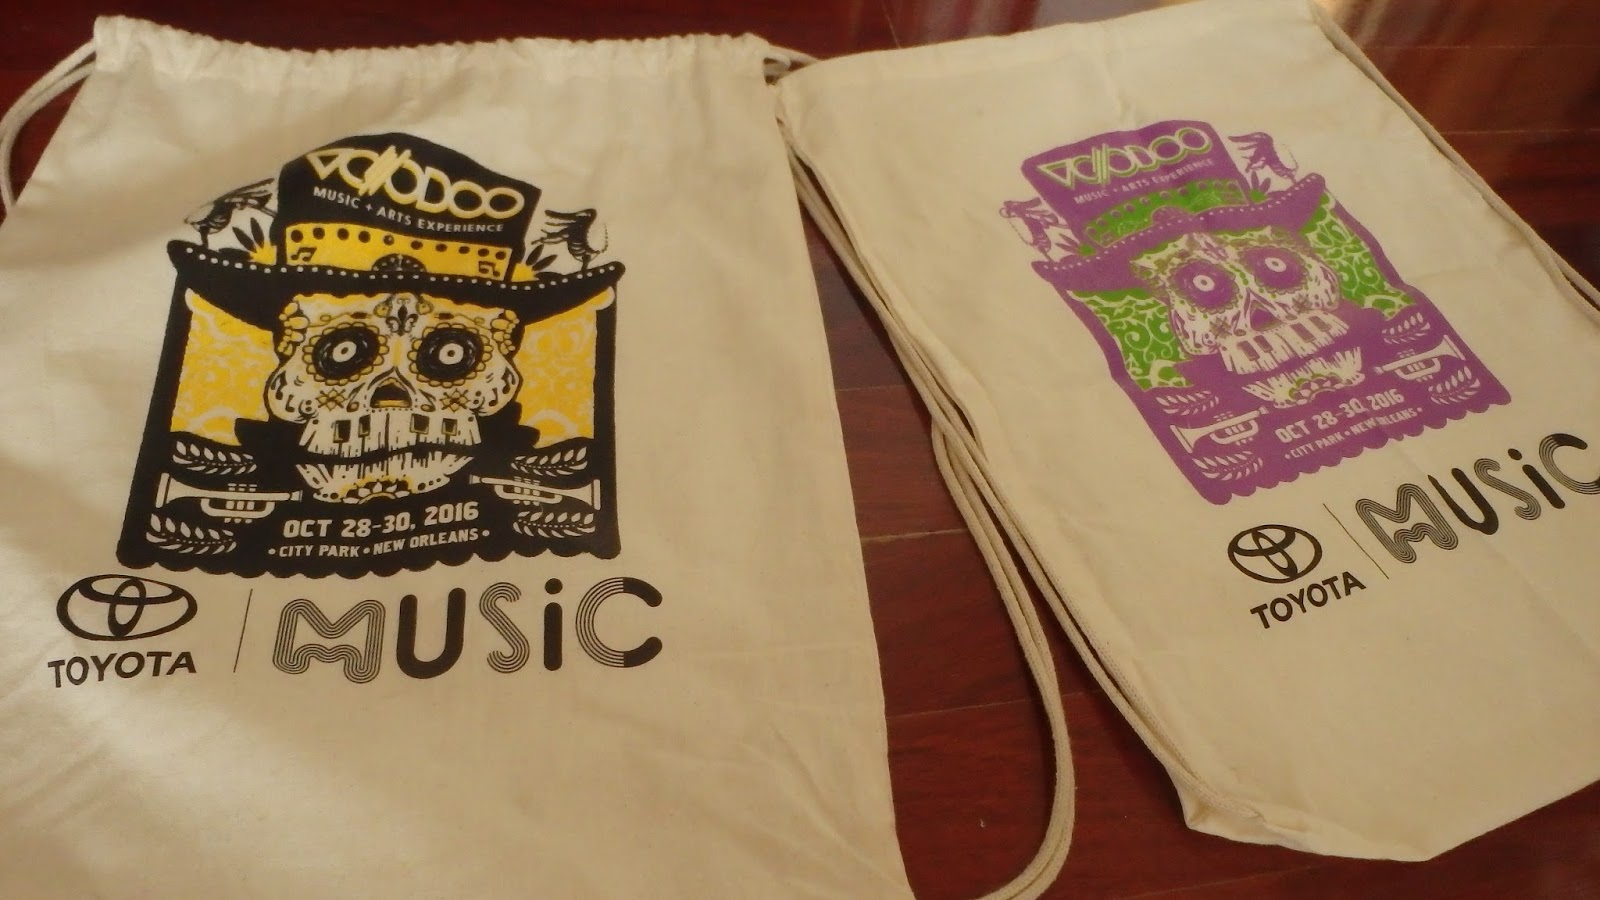 Voodoo Fest 2016 screen printed bags